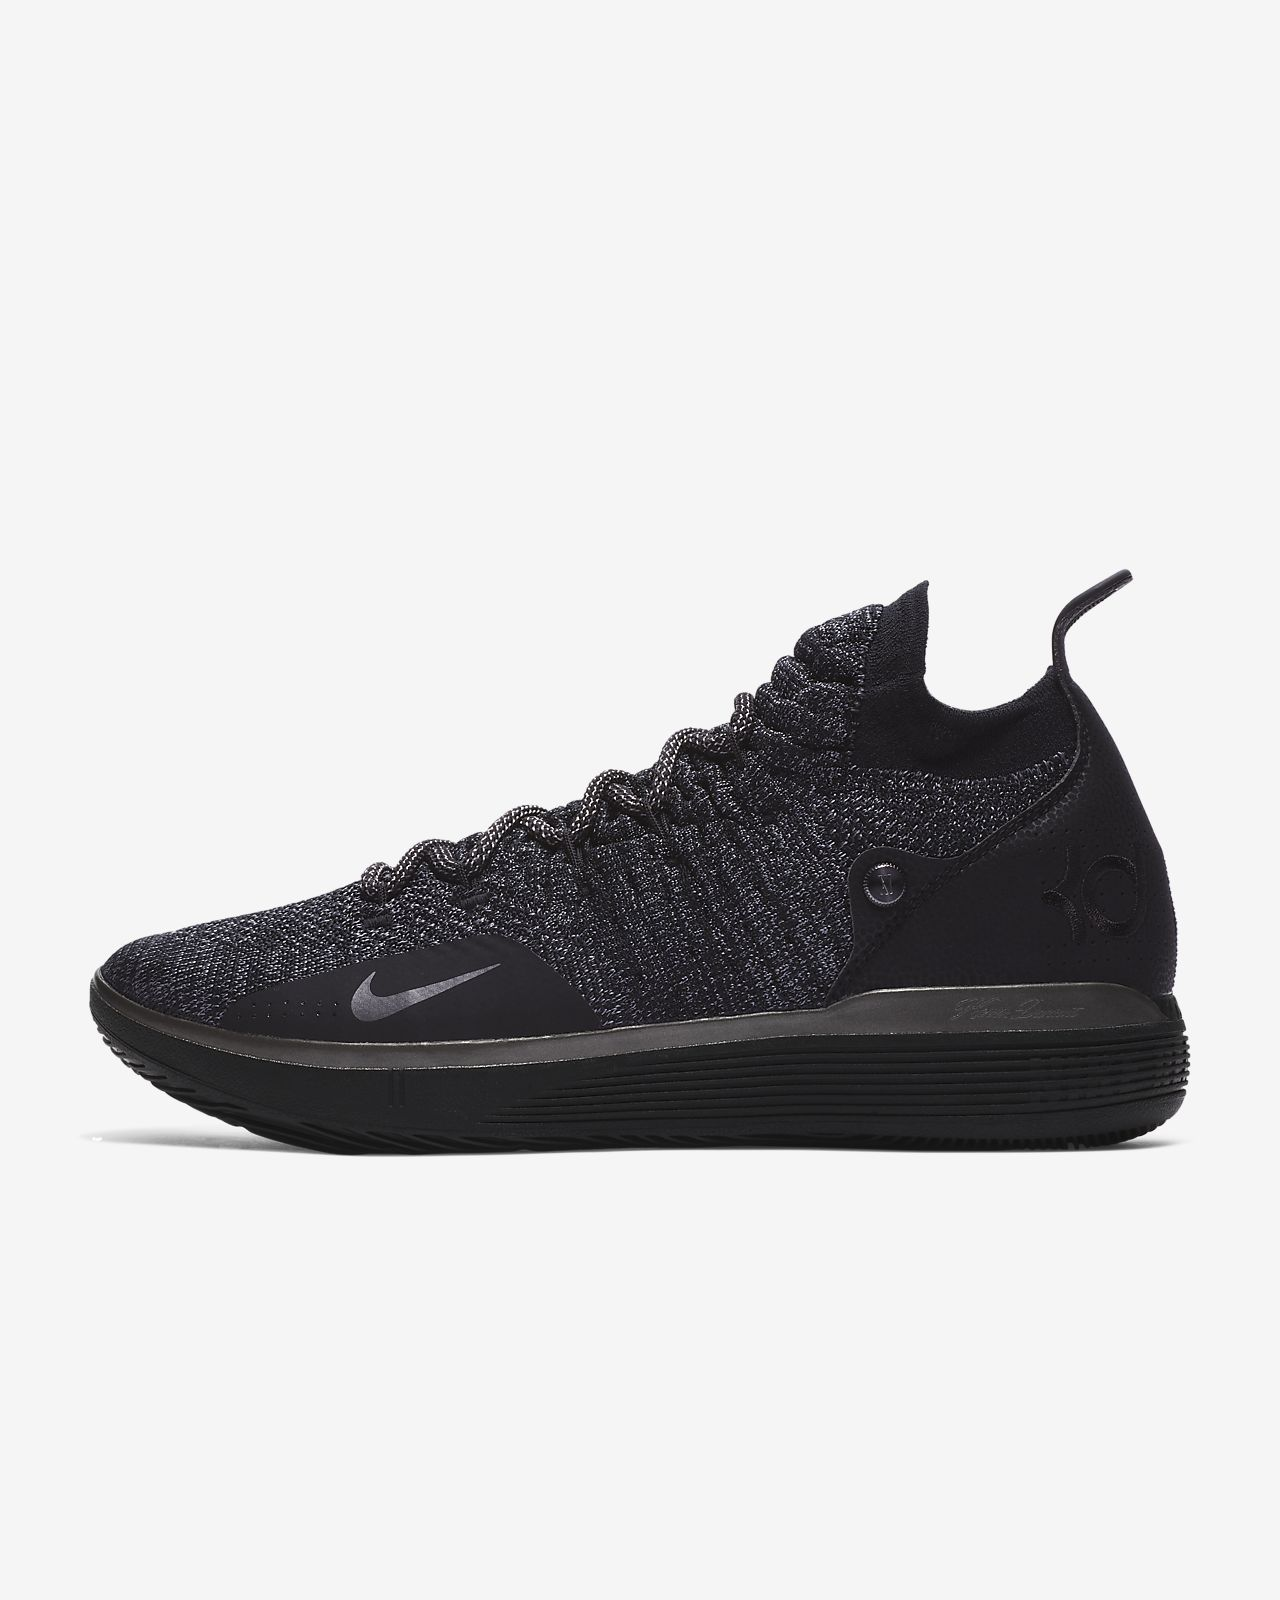 new arrival 91271 4d718 Low Resolution Nike Zoom KD11 Basketballschuh Nike Zoom KD11 Basketballschuh